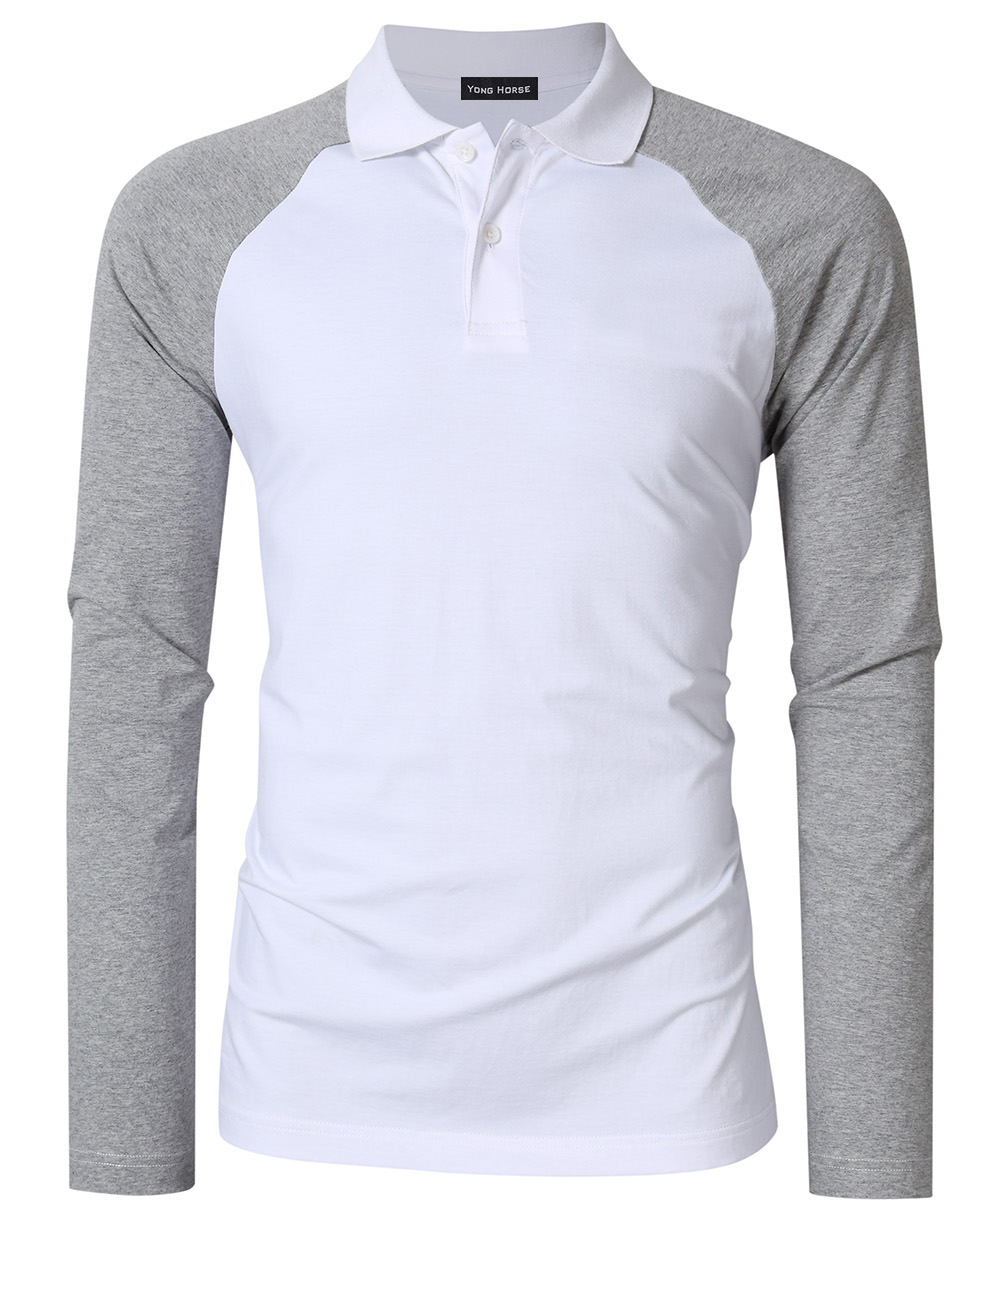 Men's Two Tone Color Blocked Polo Shirt